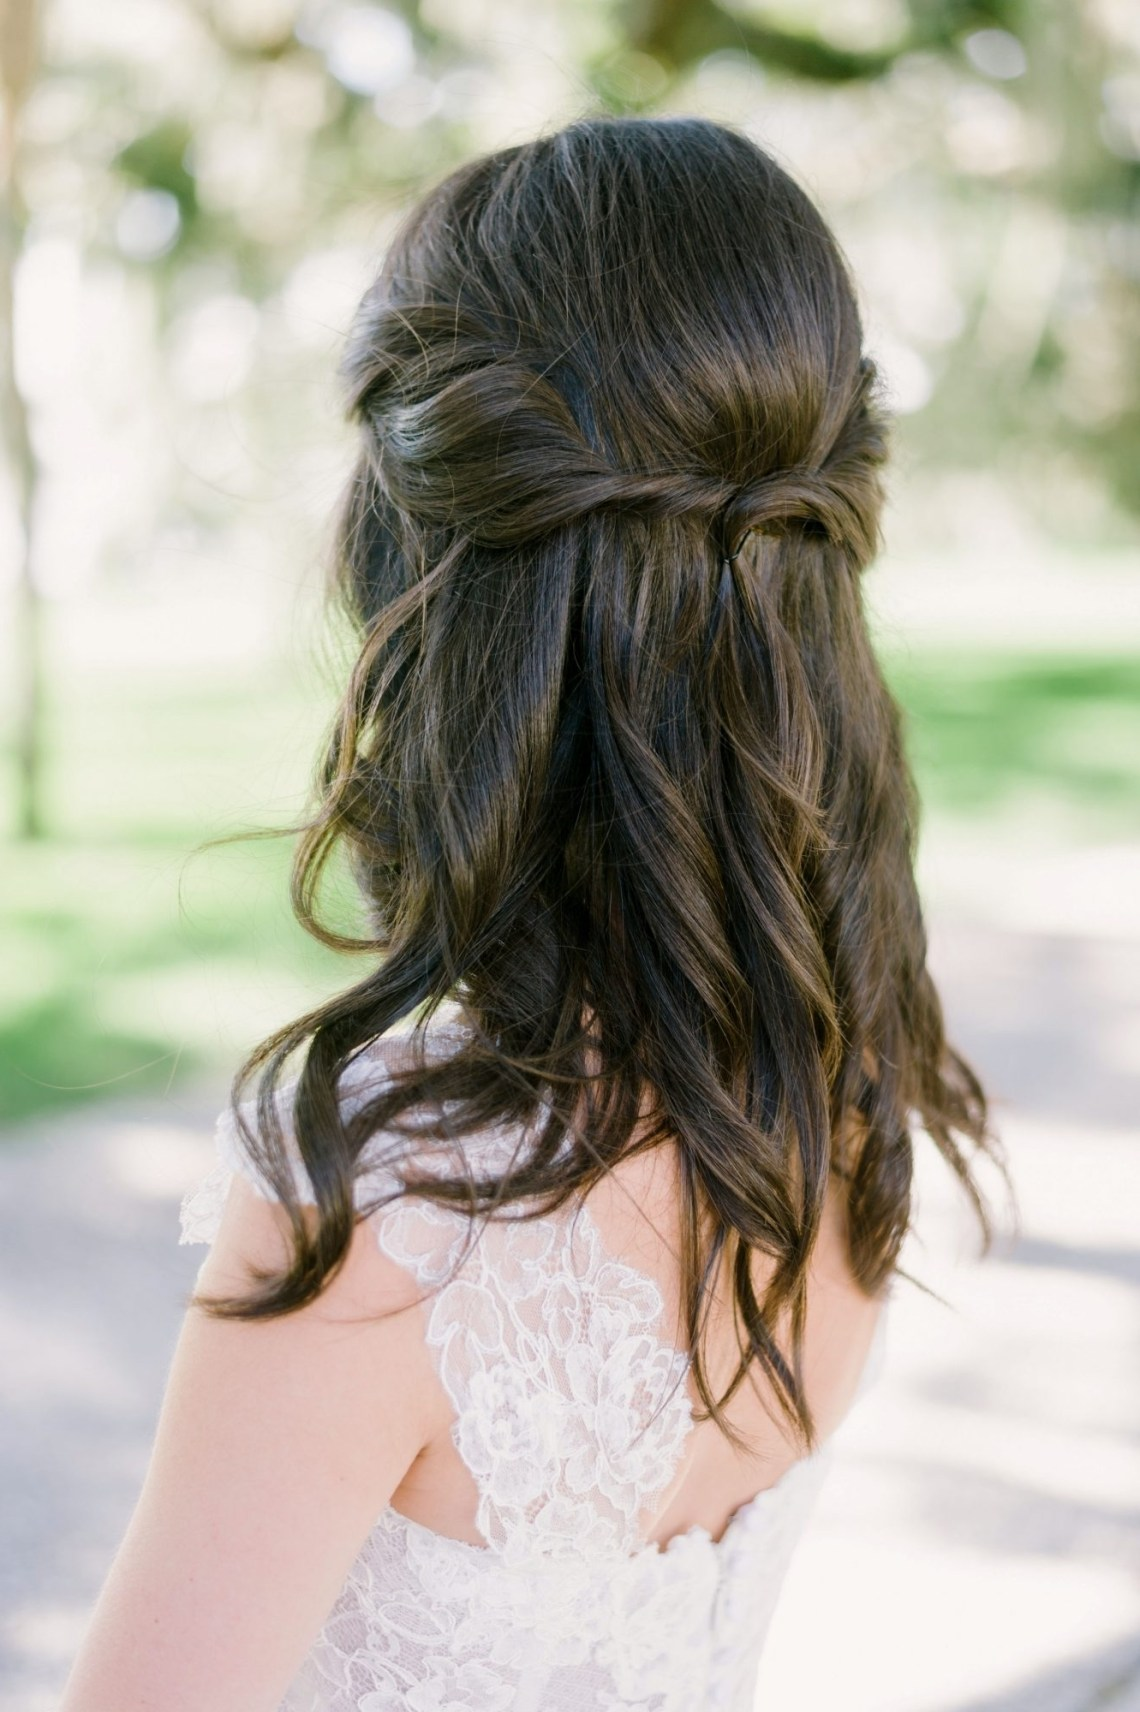 Simple Wedding Hairstyles That Prove Less Is More | Martha Diy Wedding Hairstyles For Medium Hair